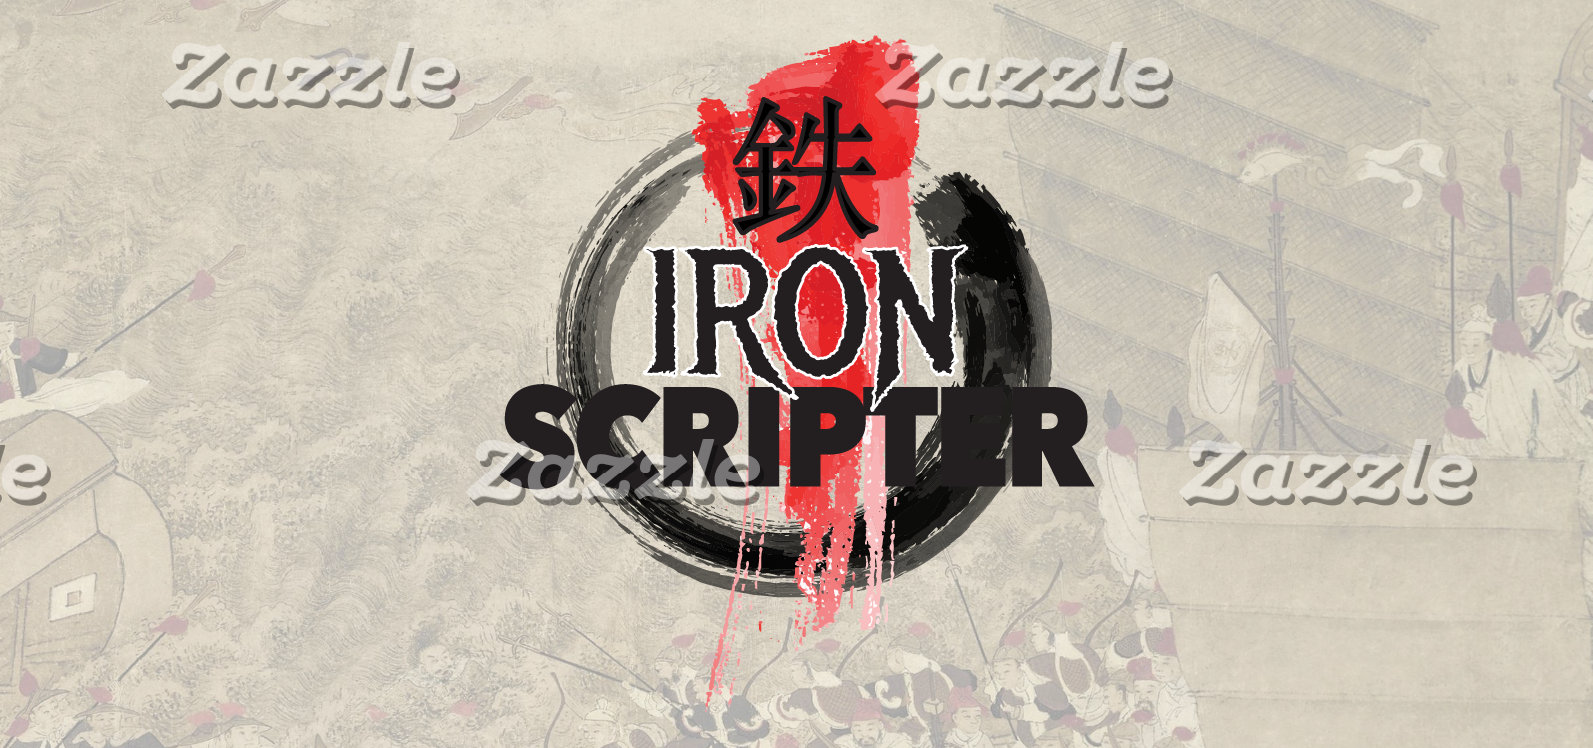 Iron Scripter